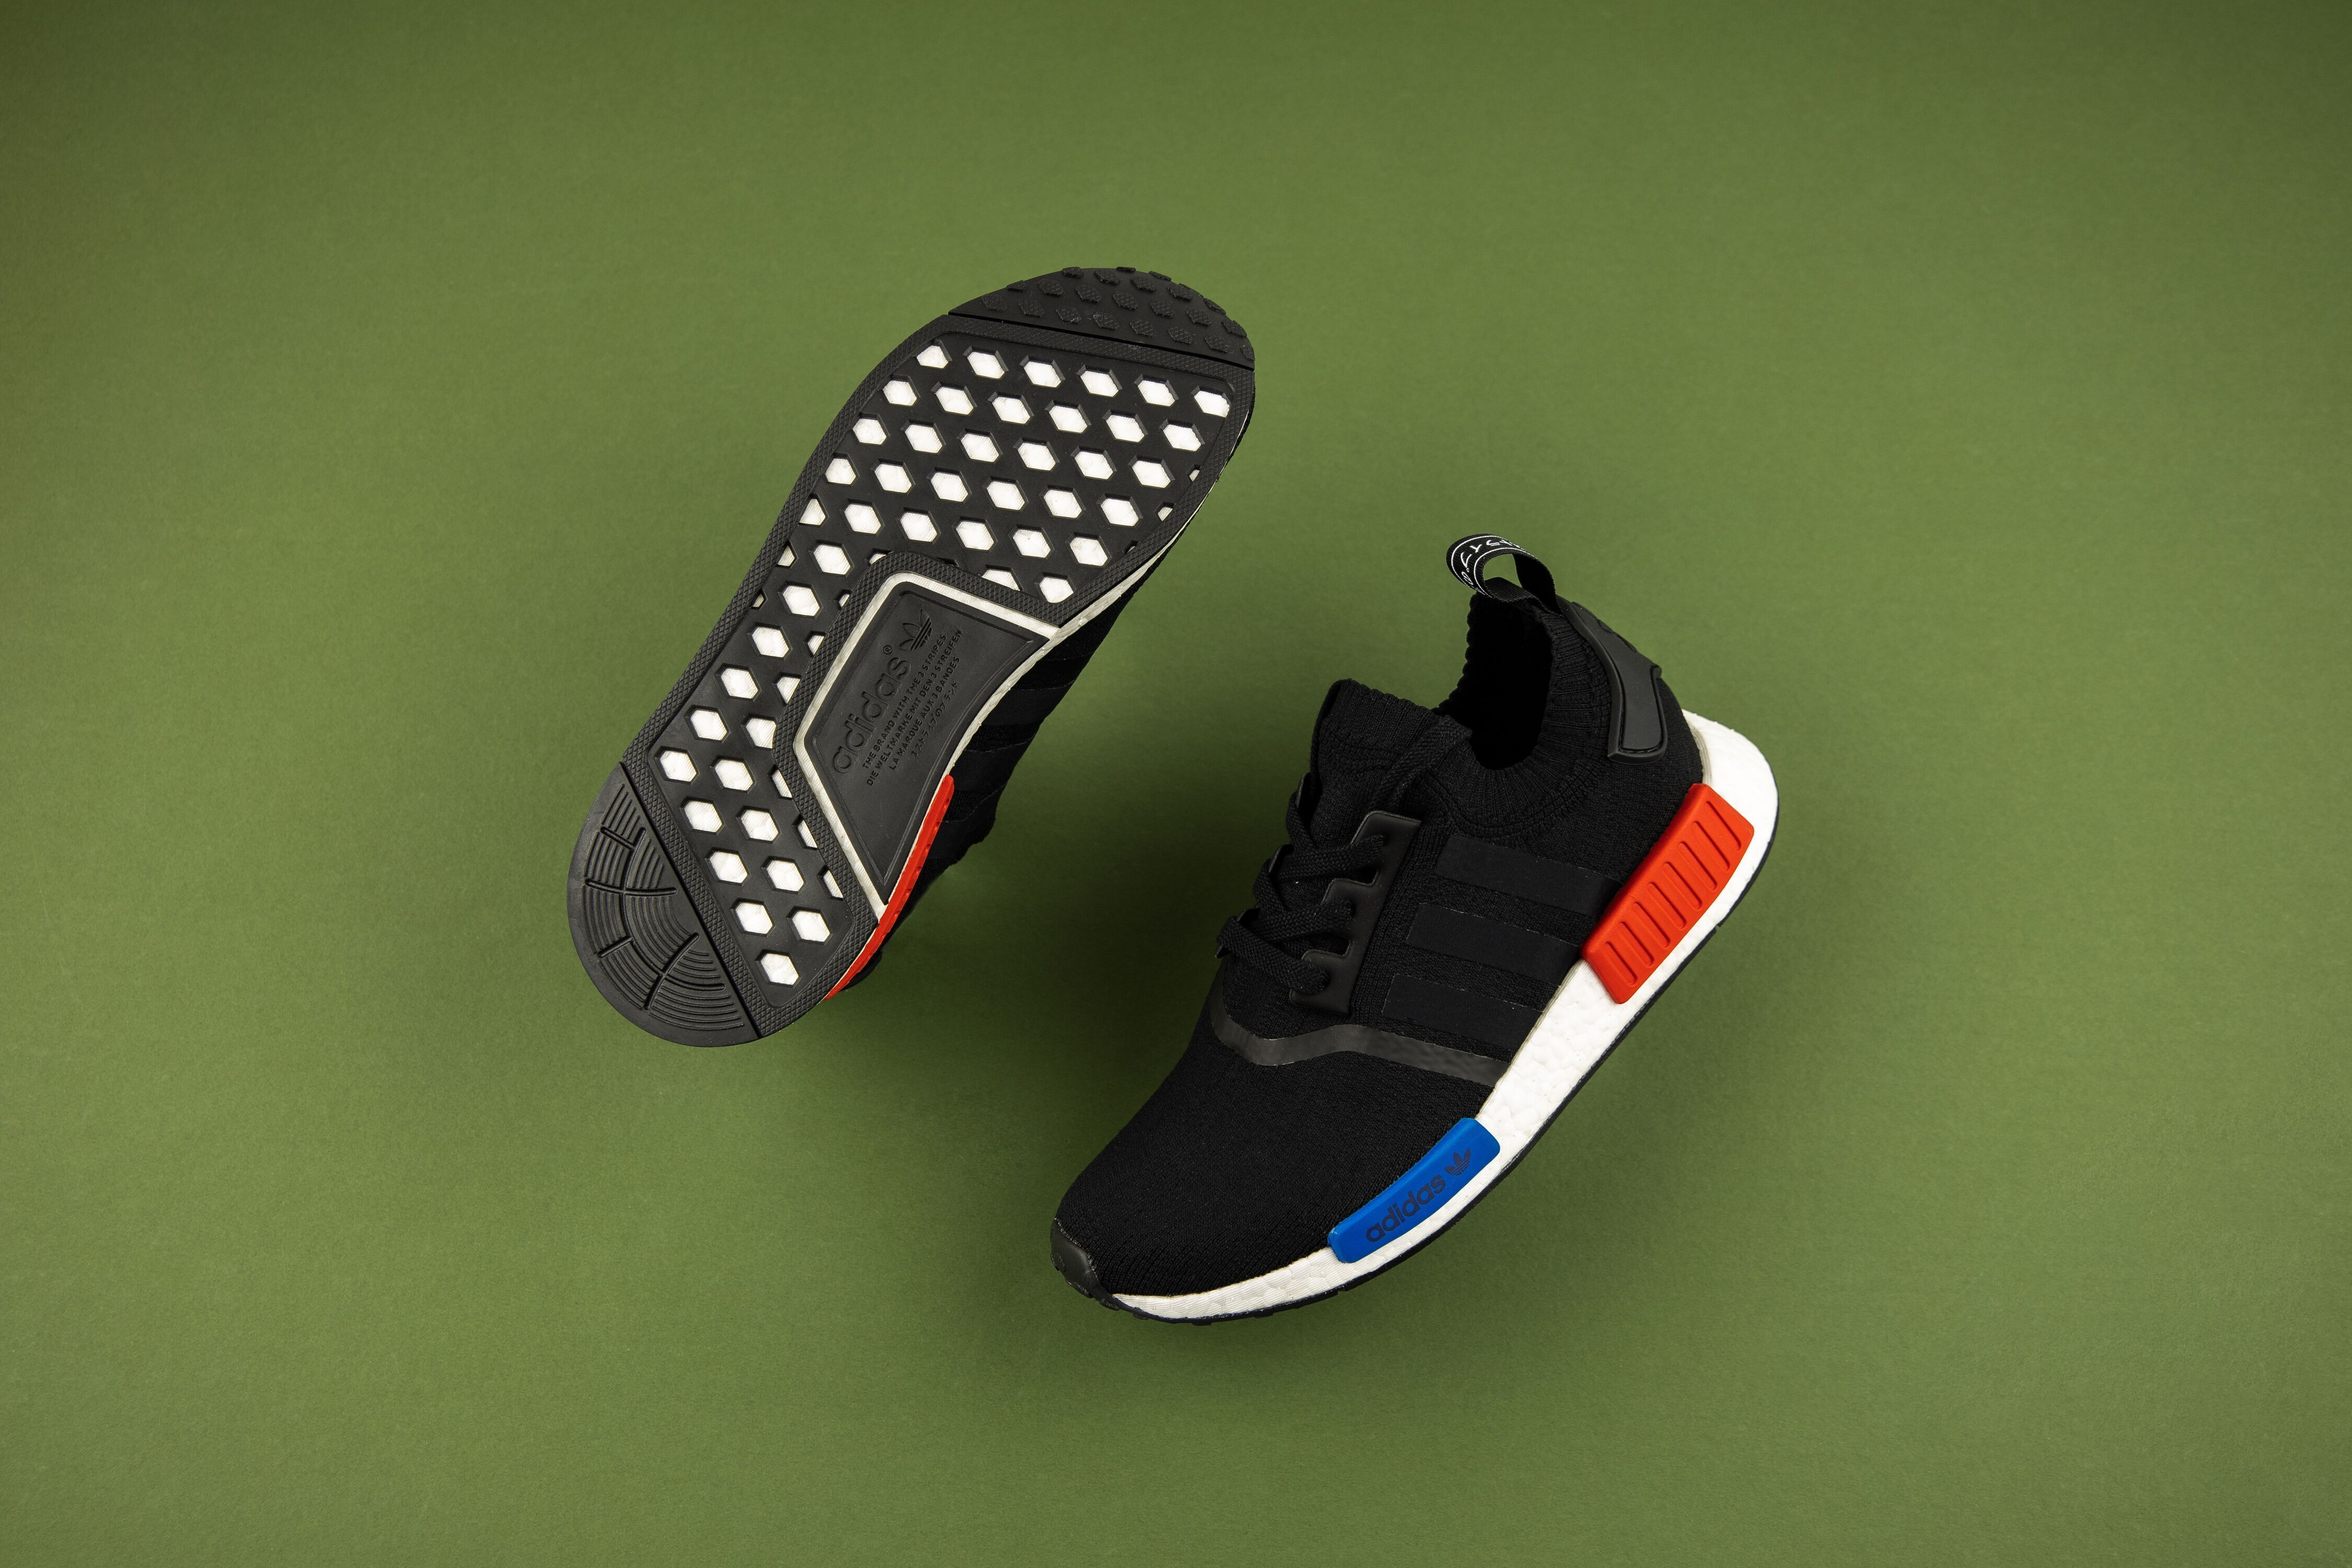 132 Best adidas NMD images in 2020 | Adidas nmd, Nmd, Adidas